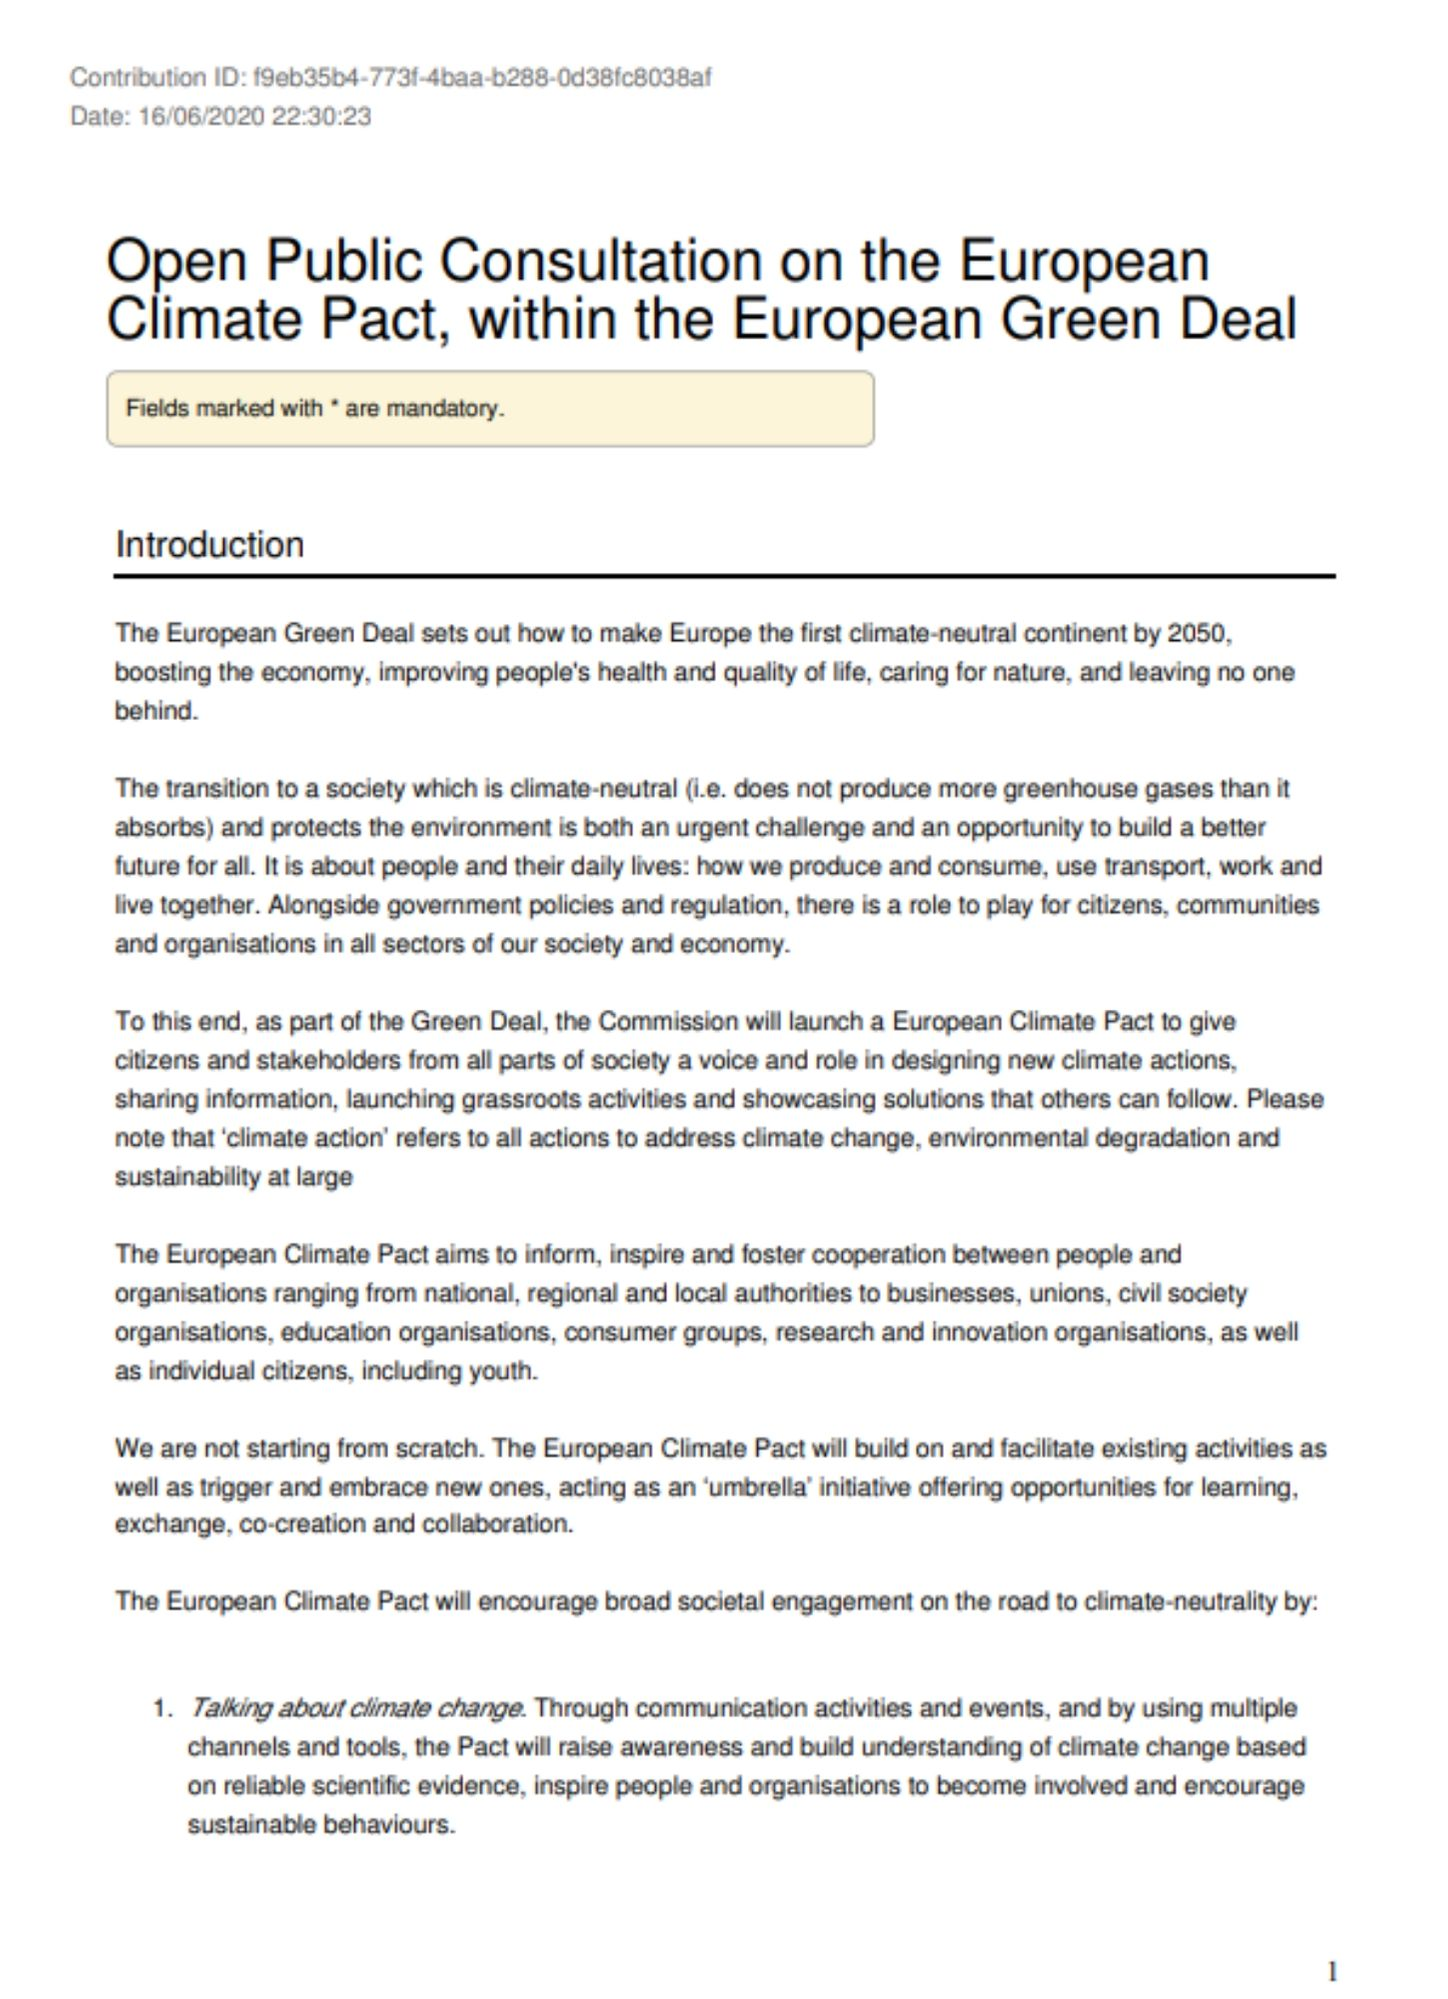 Consultation - European Climate Pact